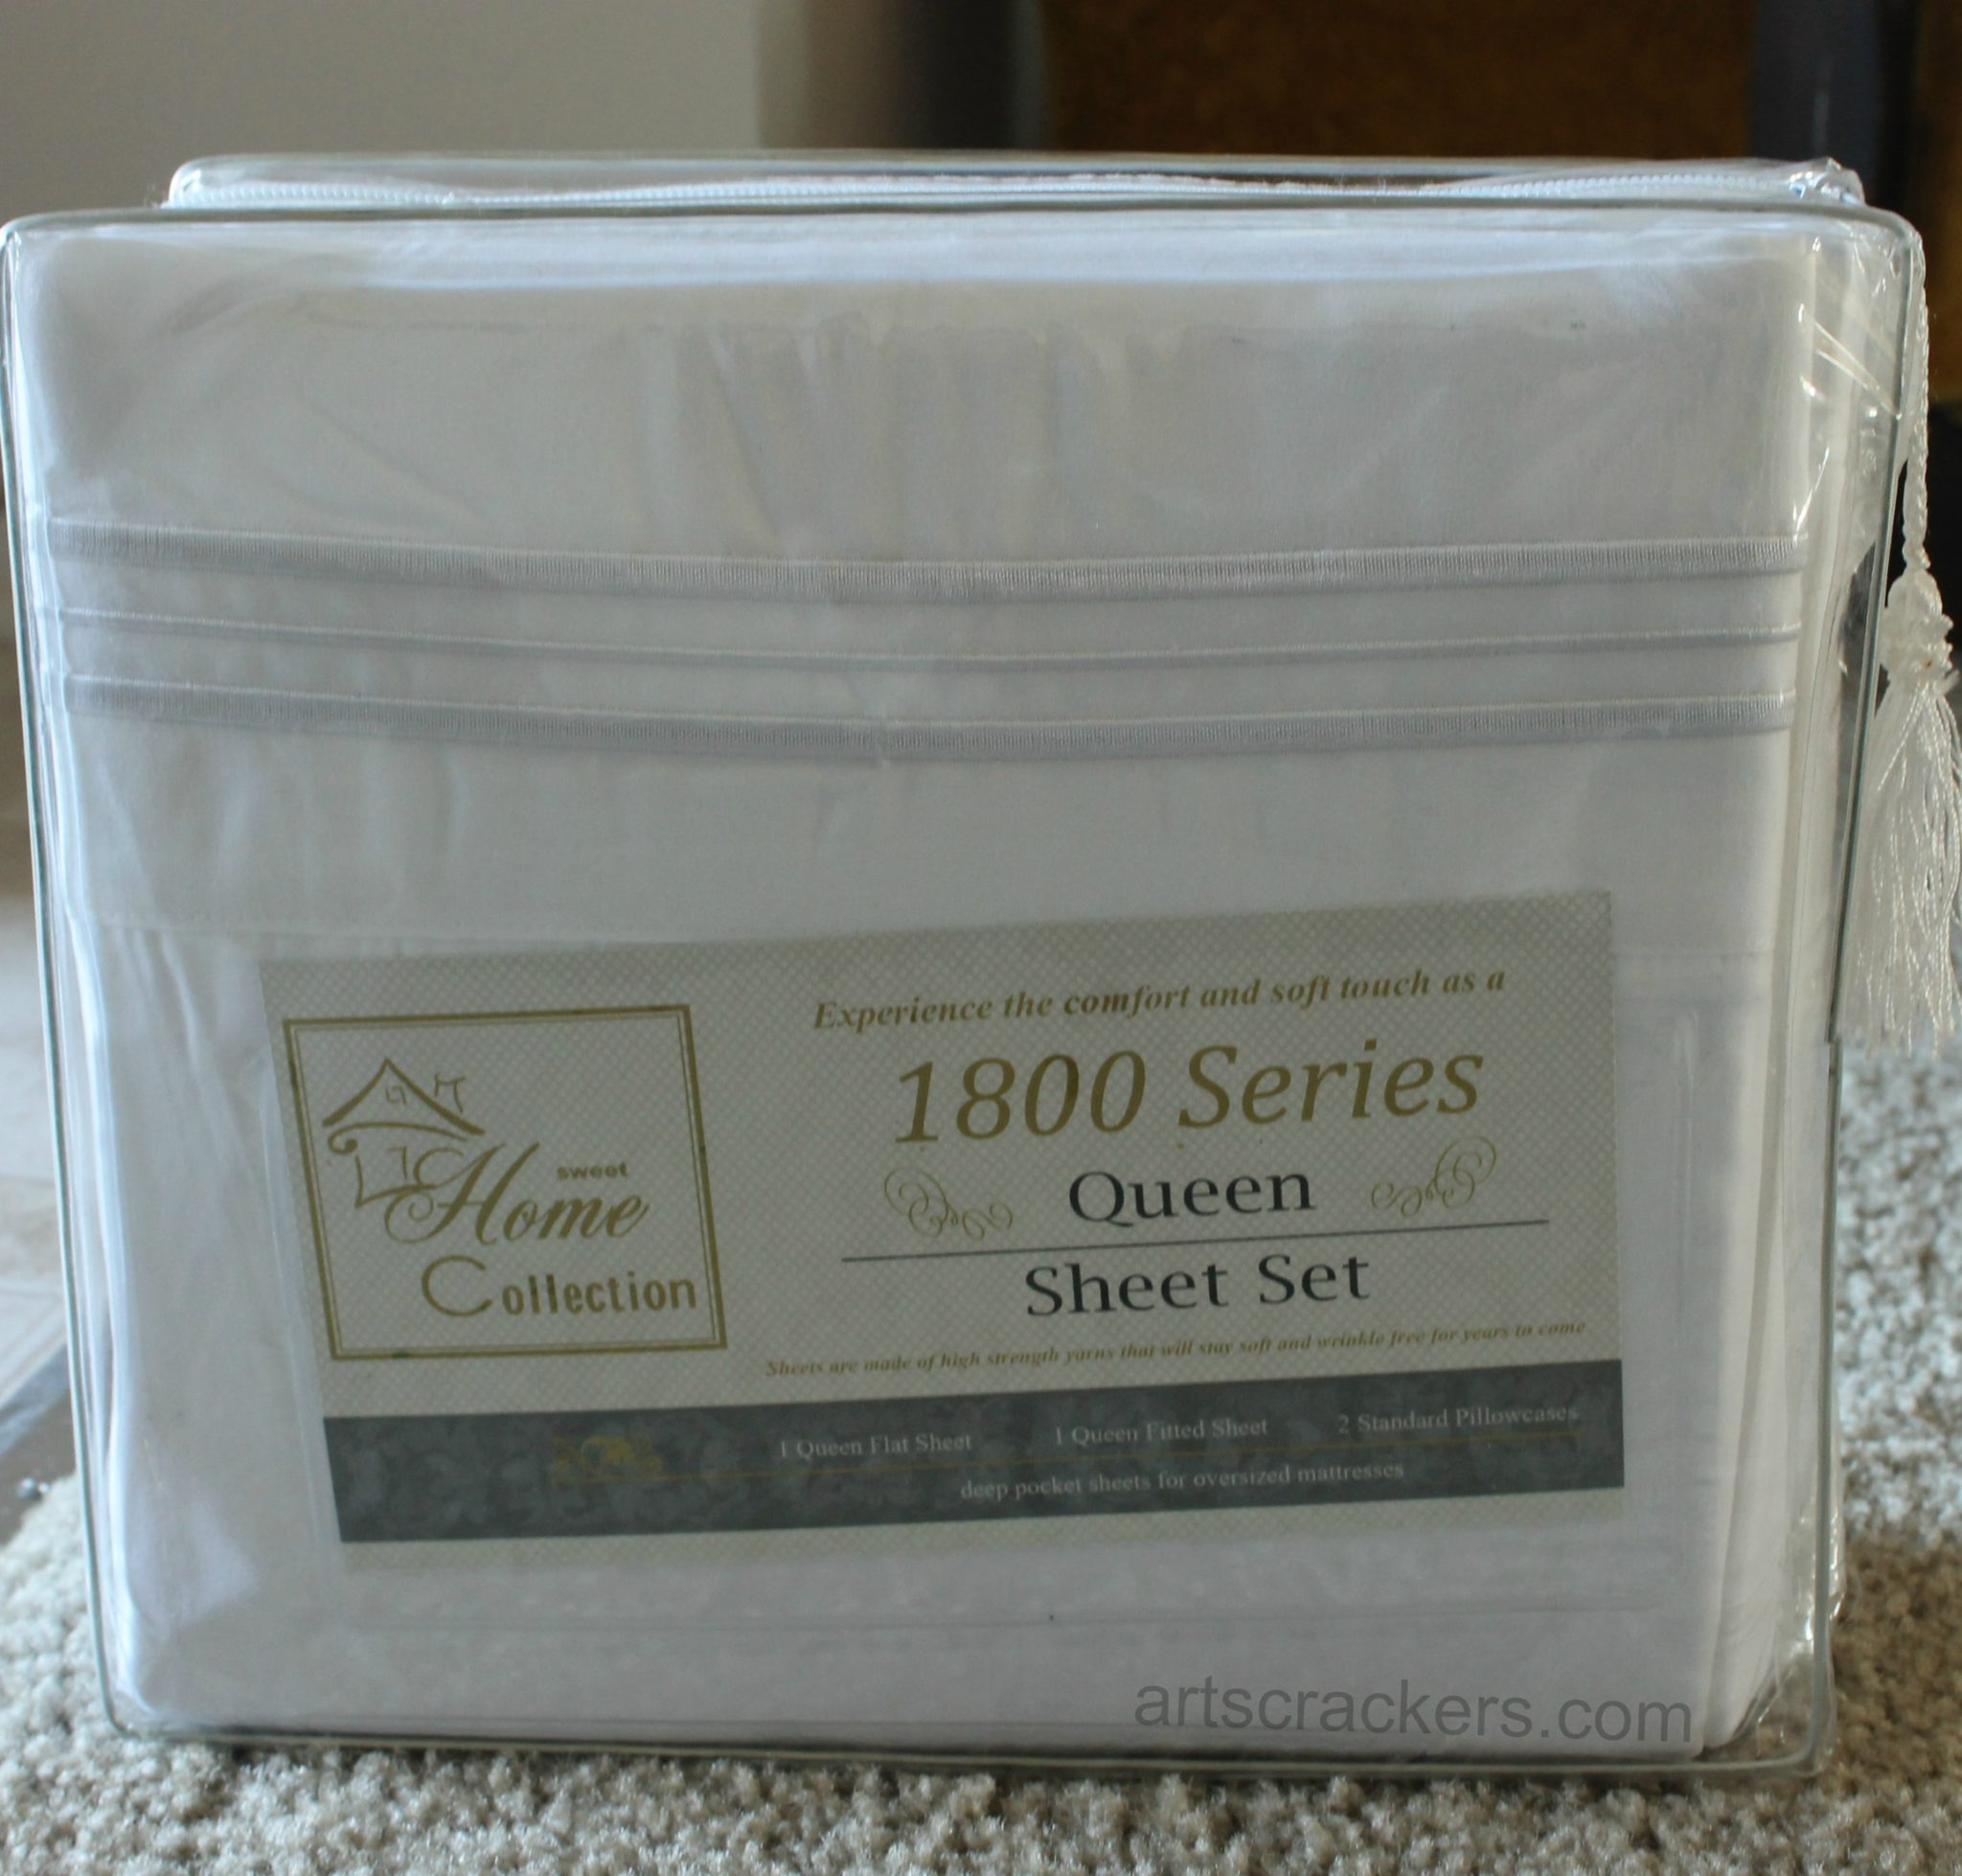 1800 Series Queen Sheet Set Amazon